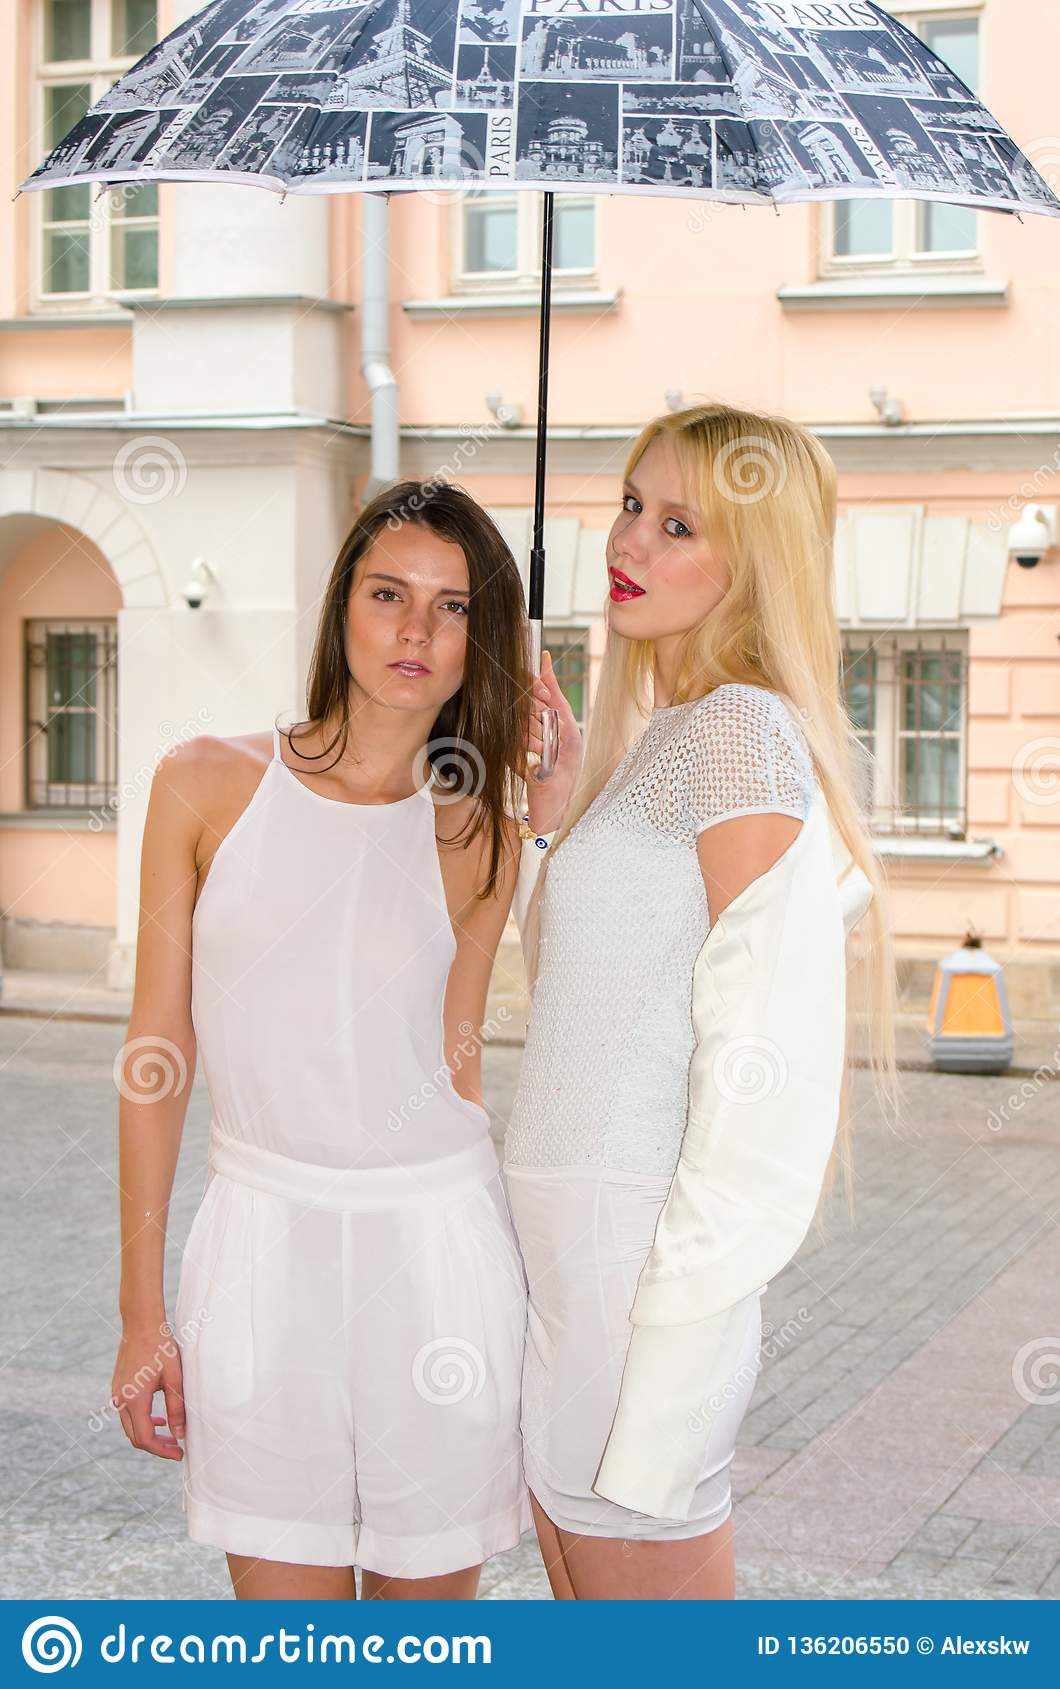 Two friends blonde and brunette in white dresses hiding from the weather under a large umbrella in the alleys of the old city